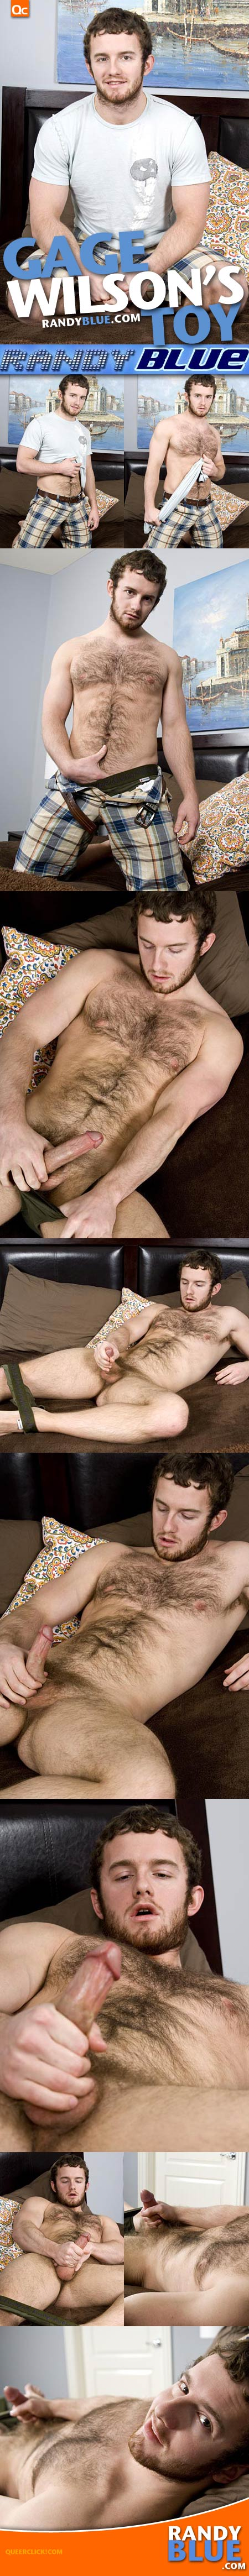 Gage Wilson's Toy at RandyBlue.com.jpg